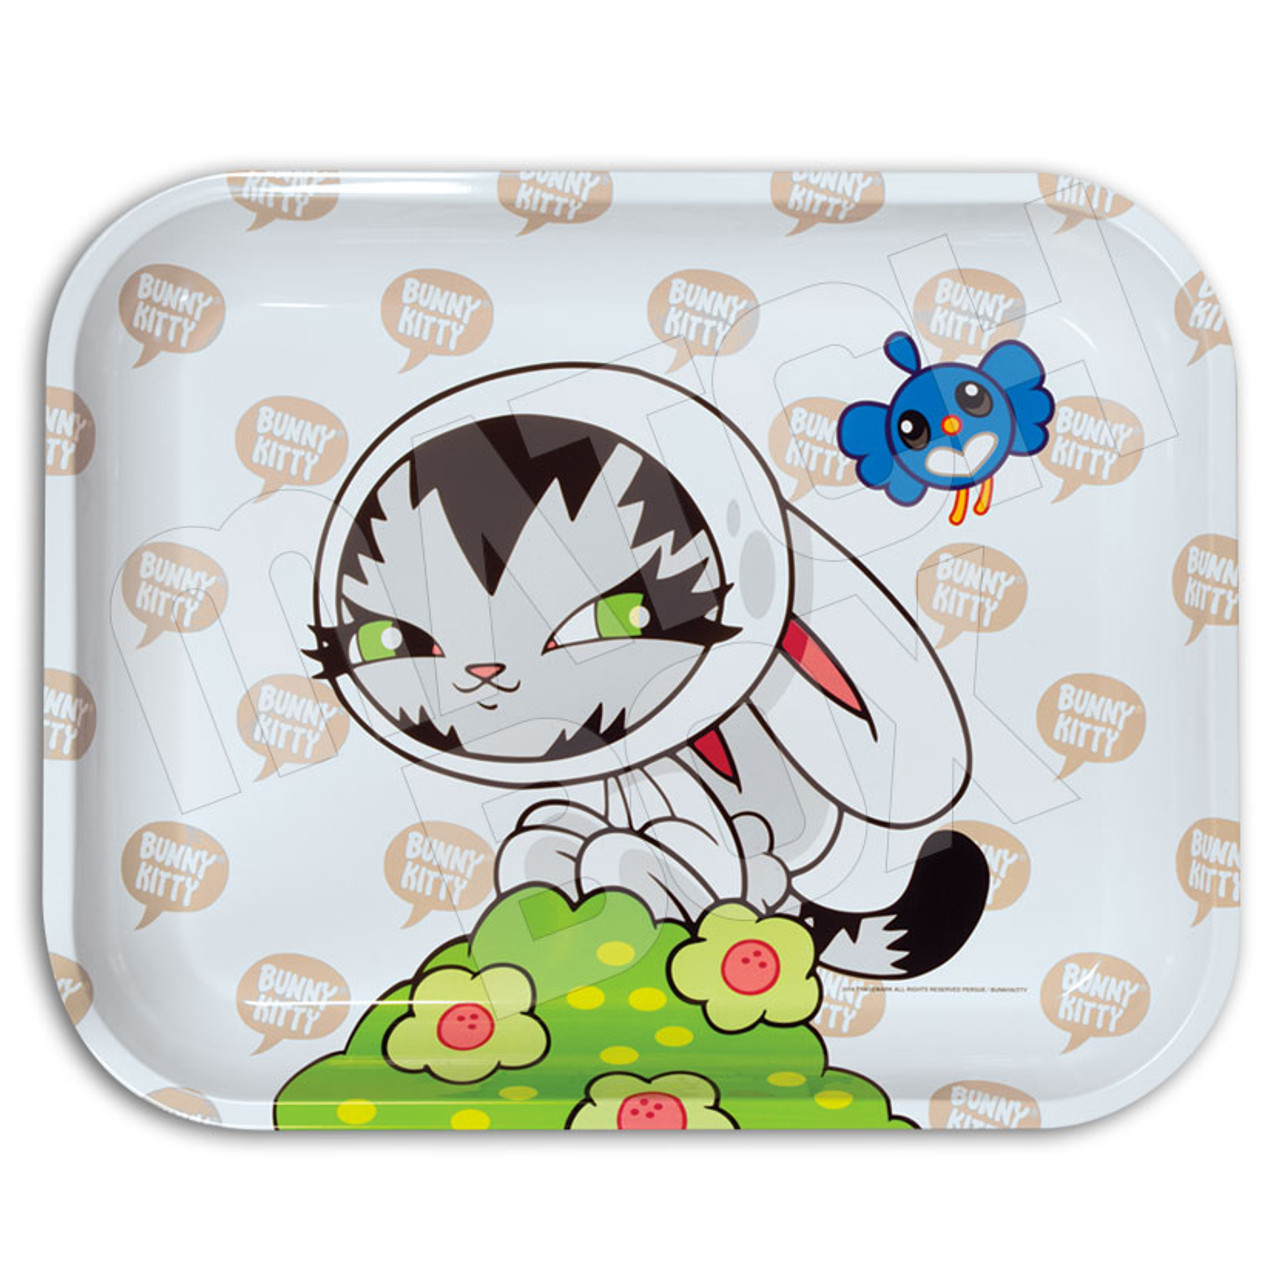 RAW ARTIST SERIES ROLLING TRAY PERSUE